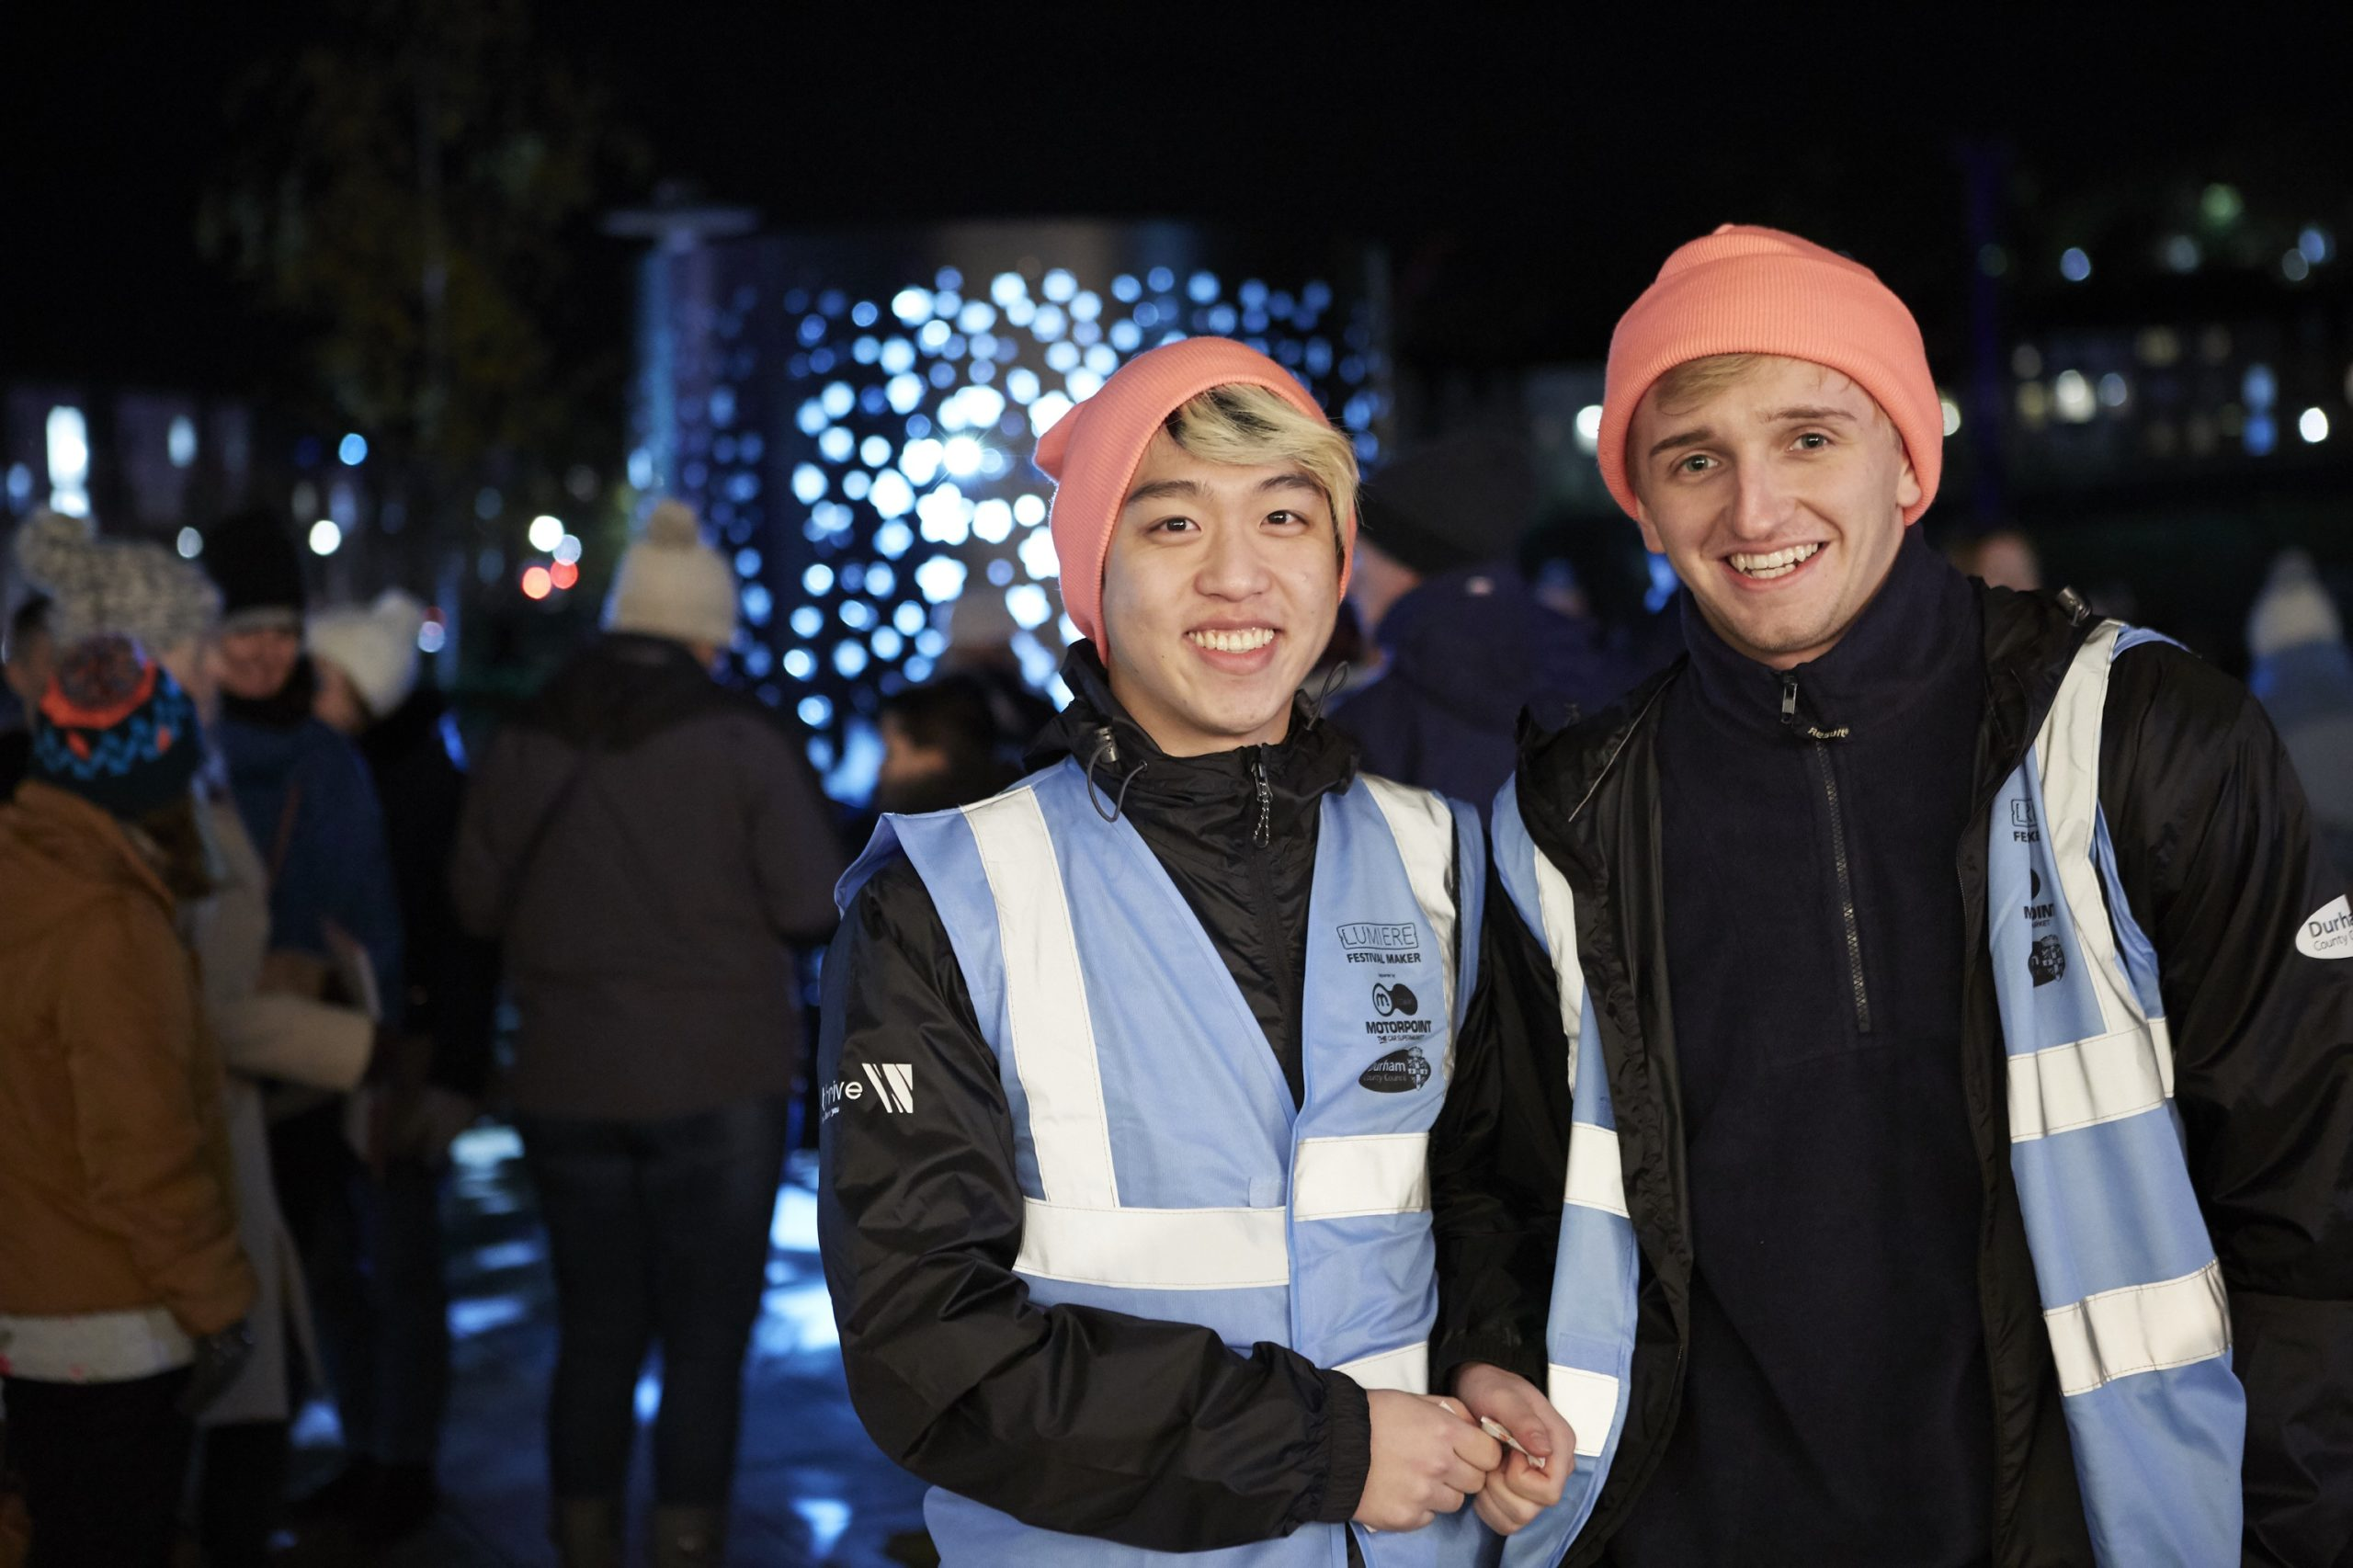 Call Out For Volunteers To Keep Lumiere Shining!